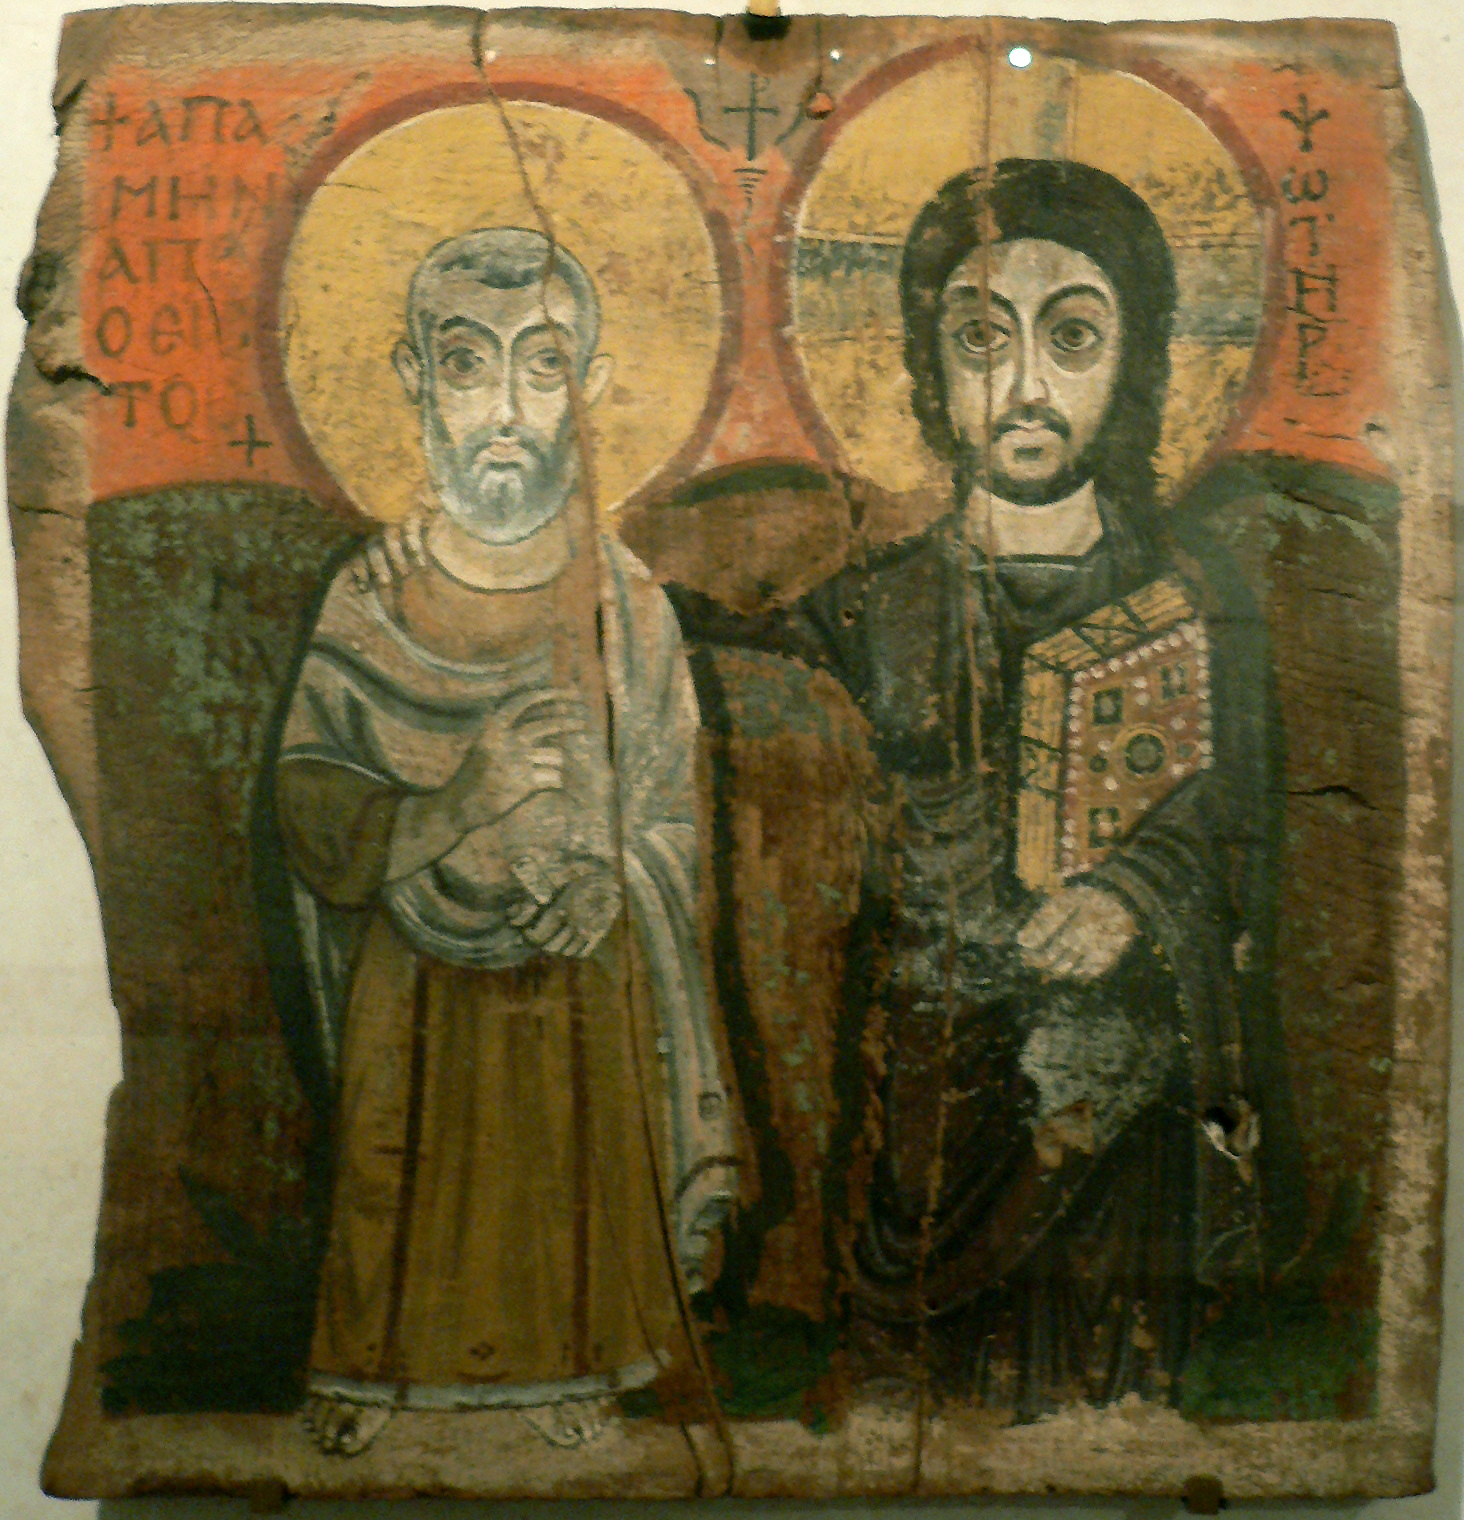 This early medieval painting of Jesus and the abbot of a monastery dates from the 6th or 7th century. The artist of this beautiful piece is unknown. Note how the figures of Jesus and the abbot are stylized, almost like drawings from a cartoon strip. (Image via Wikipedia)